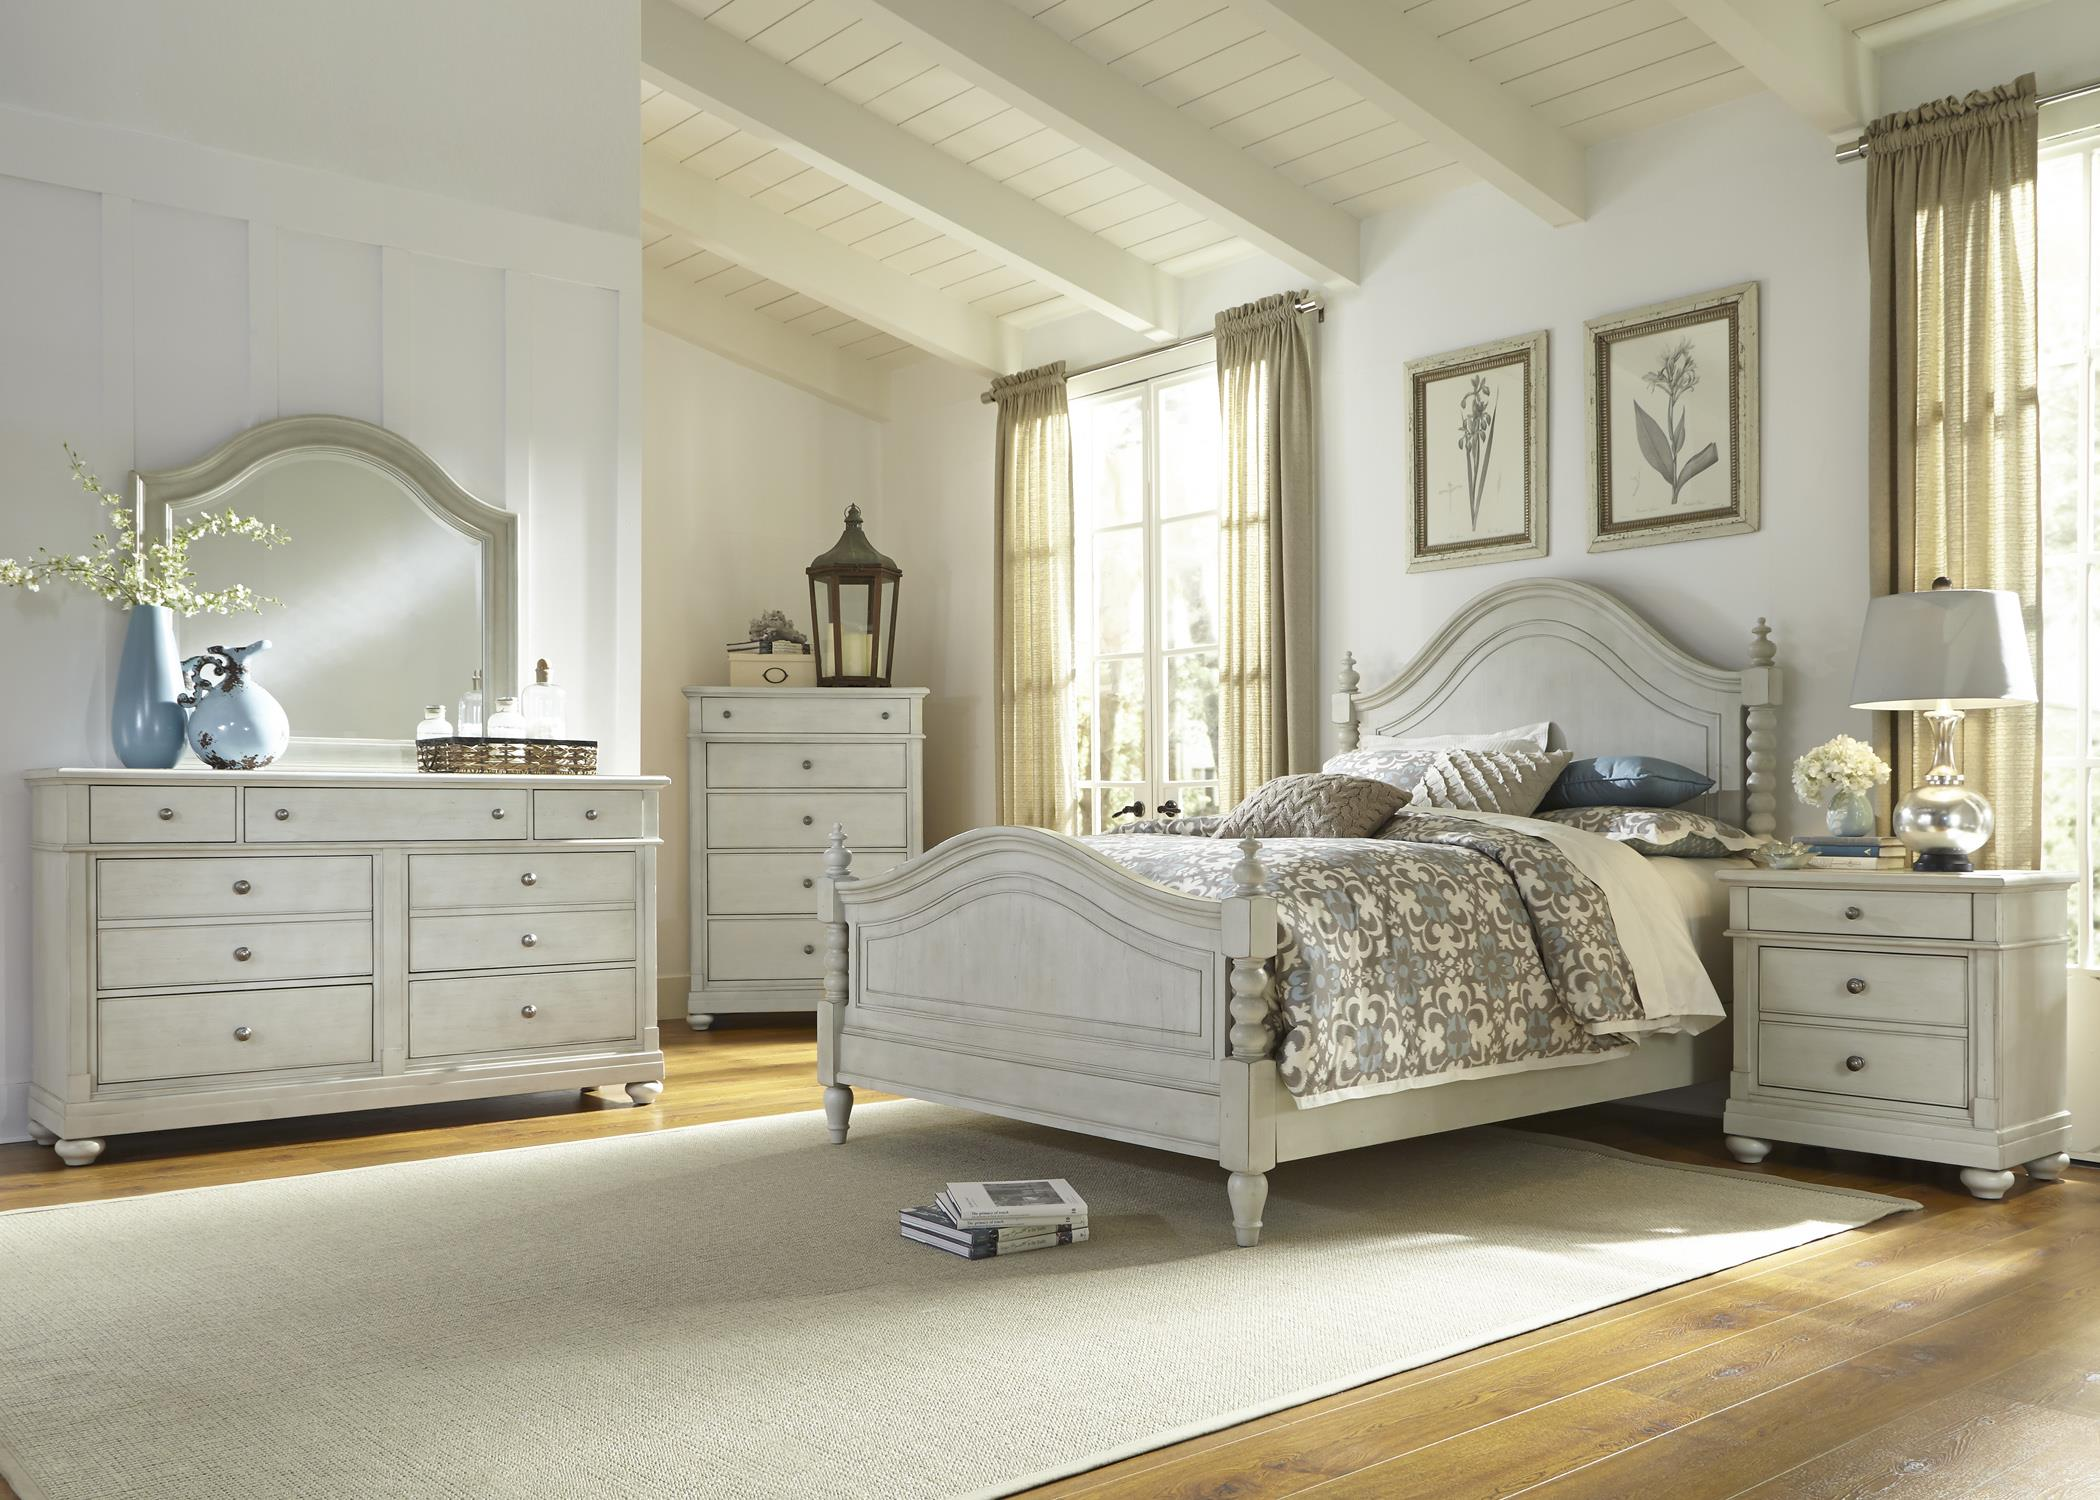 Liberty Furniture Harbor View King Bedroom Group - Item Number: 731-BR-KPSDMCN